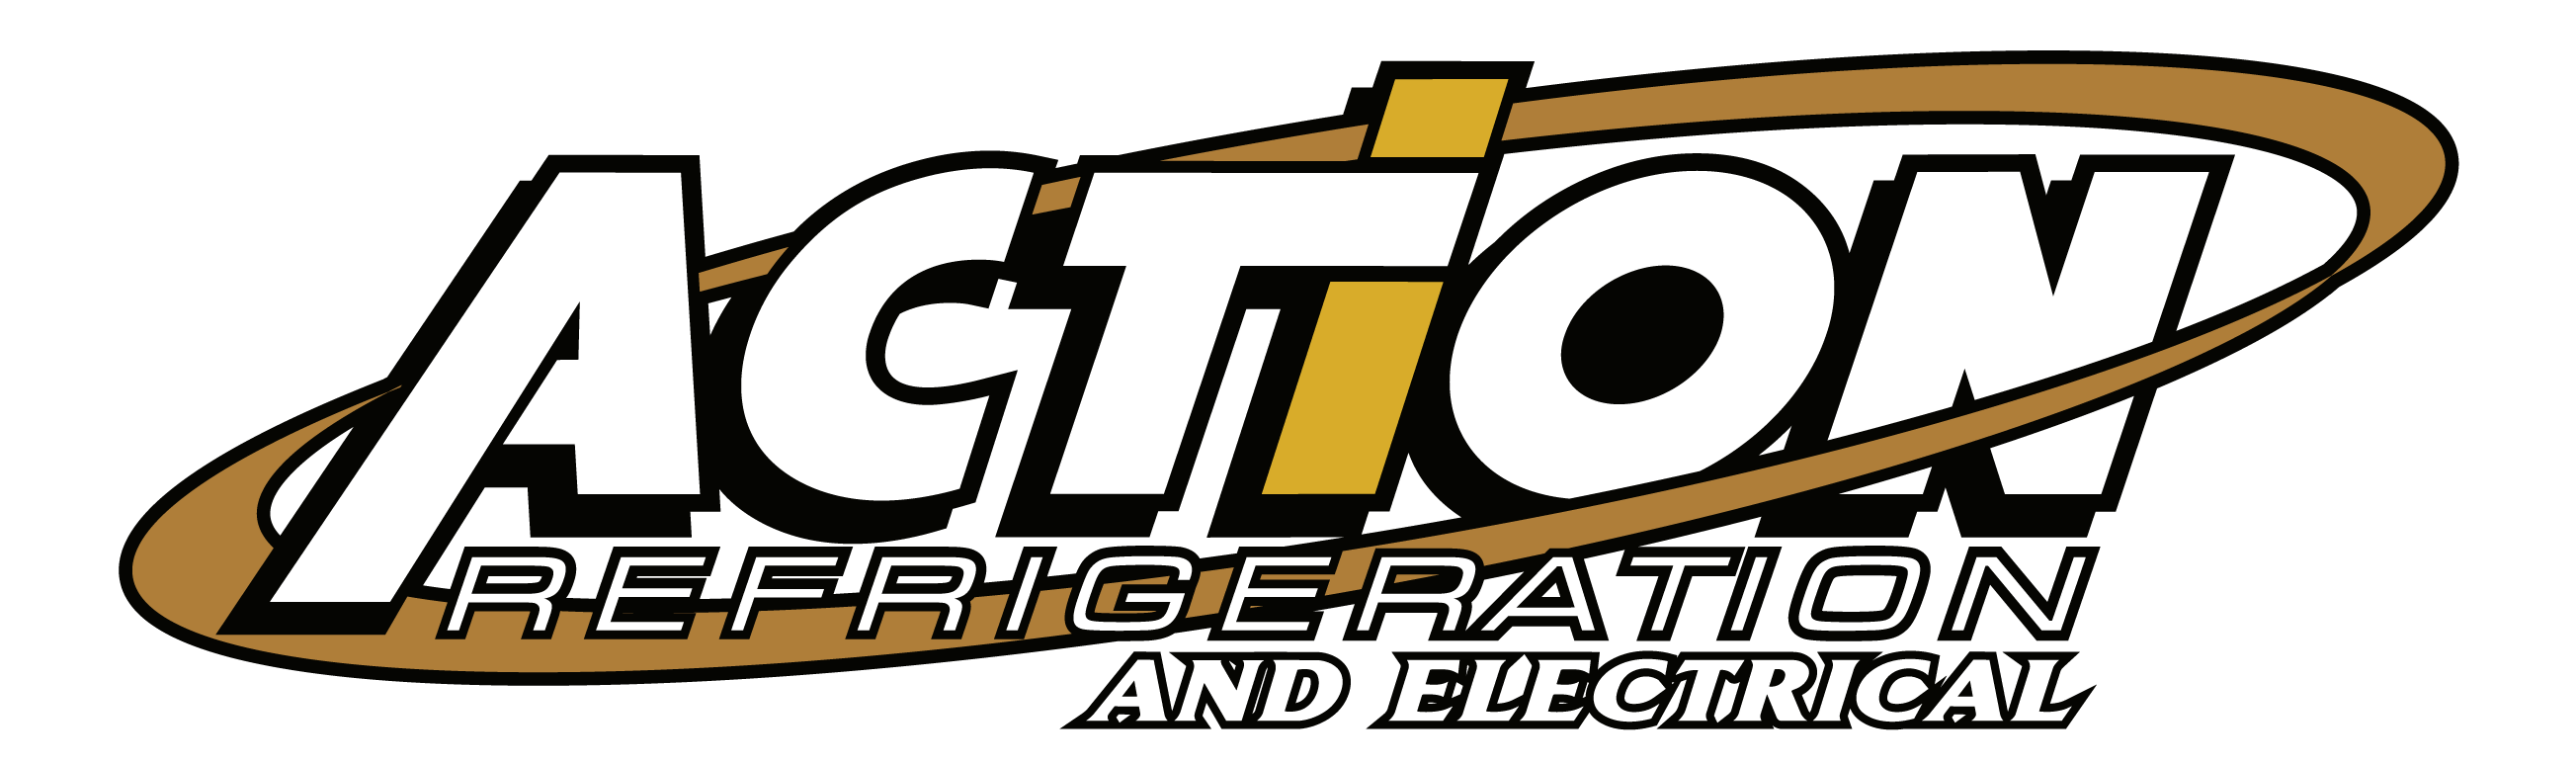 Action Refrigeration Mechanical & Electrical logo